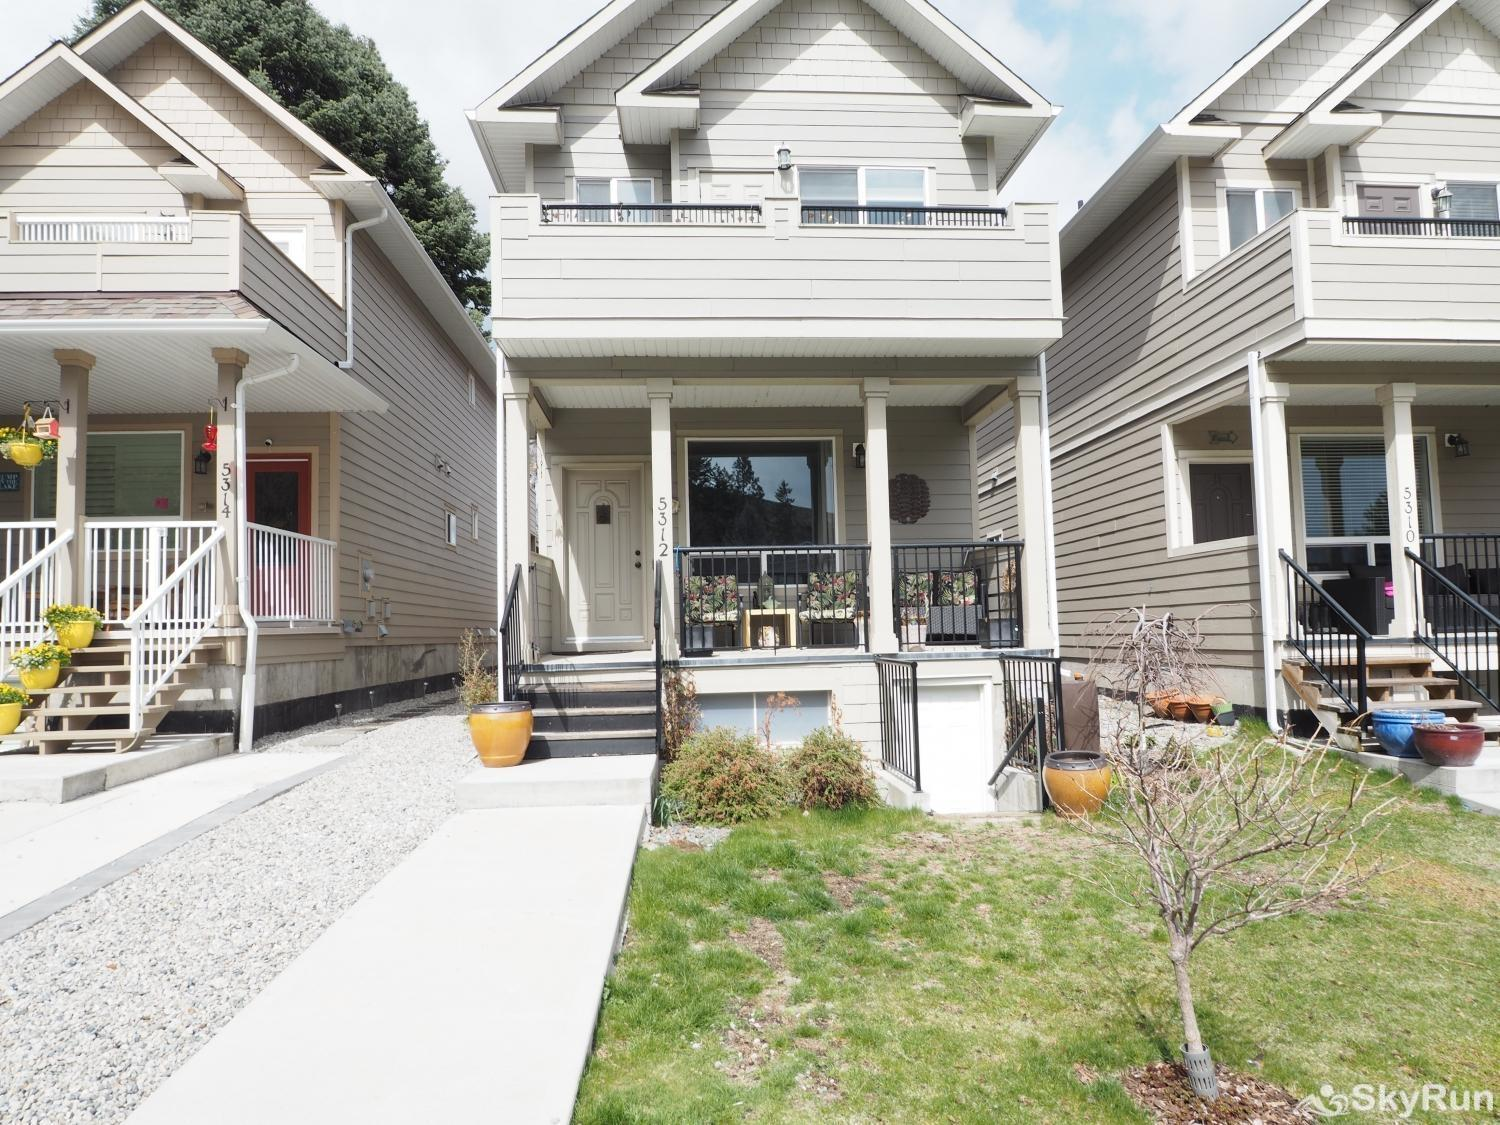 Old Summerland 4 bedroom townhouse Front yard of the property